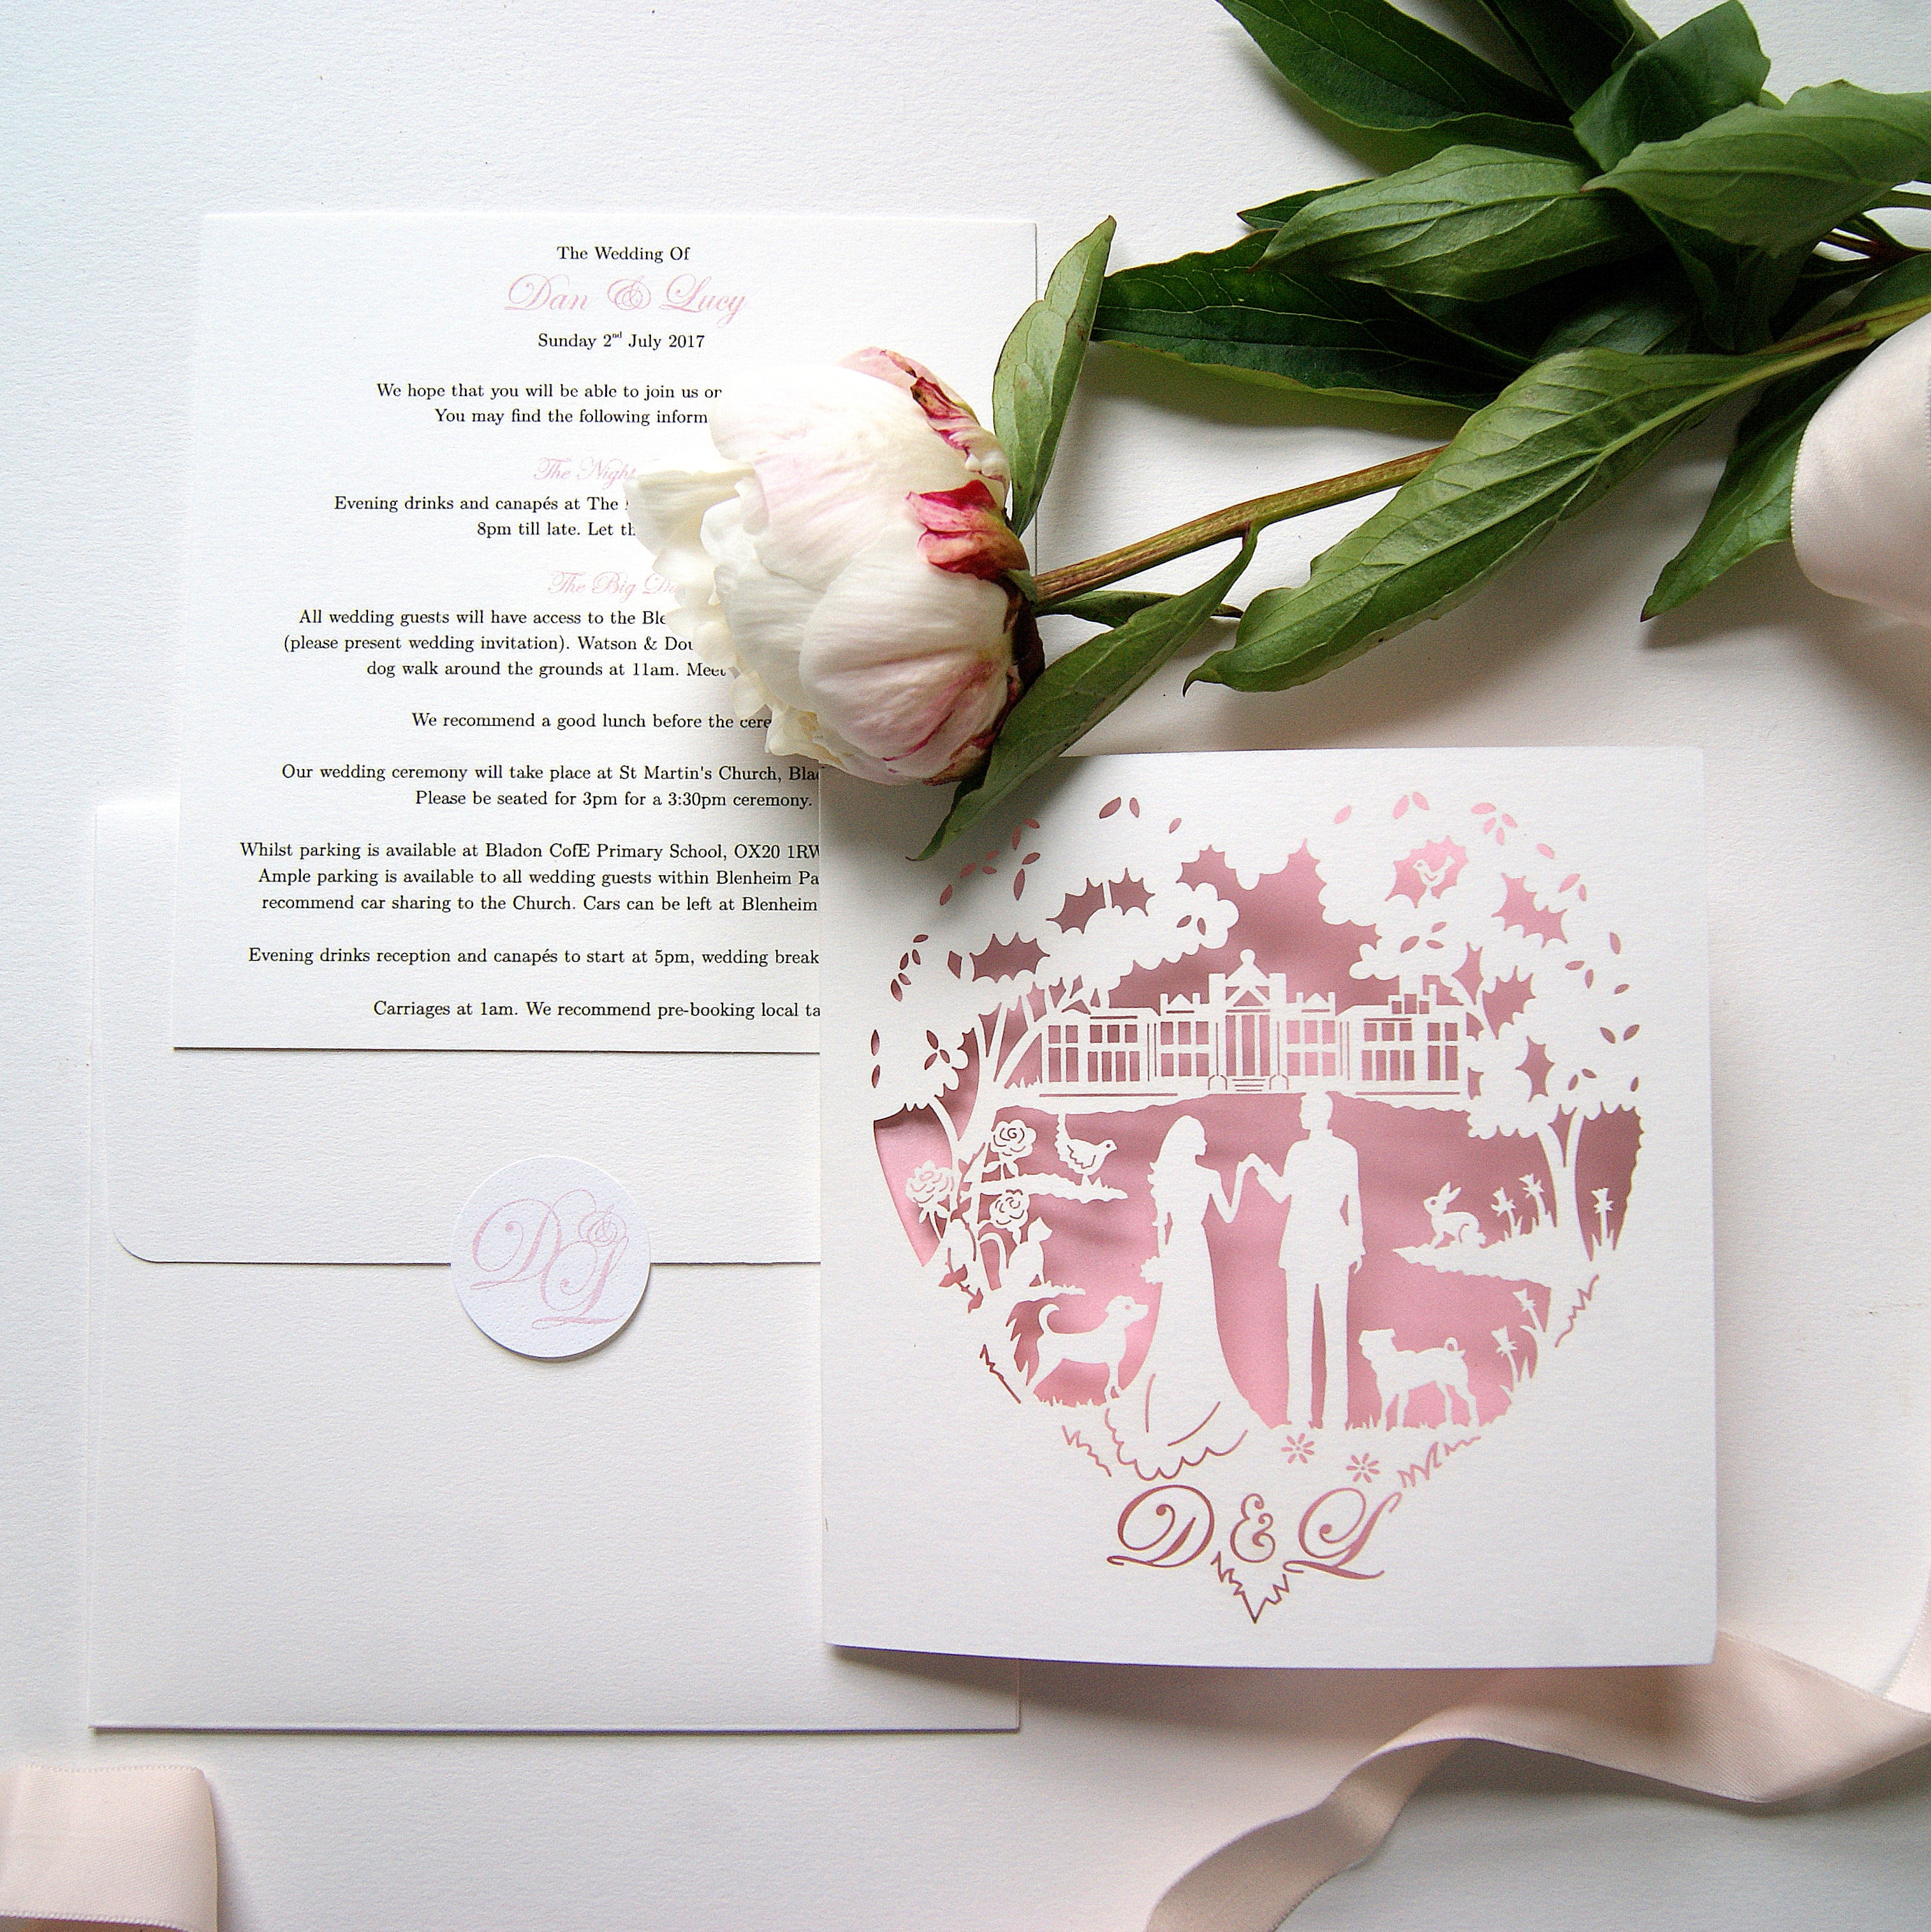 LUCY AND DANIEL BESPOKE WEDDING STATIONERY LASER CUT INVITE 1_edit